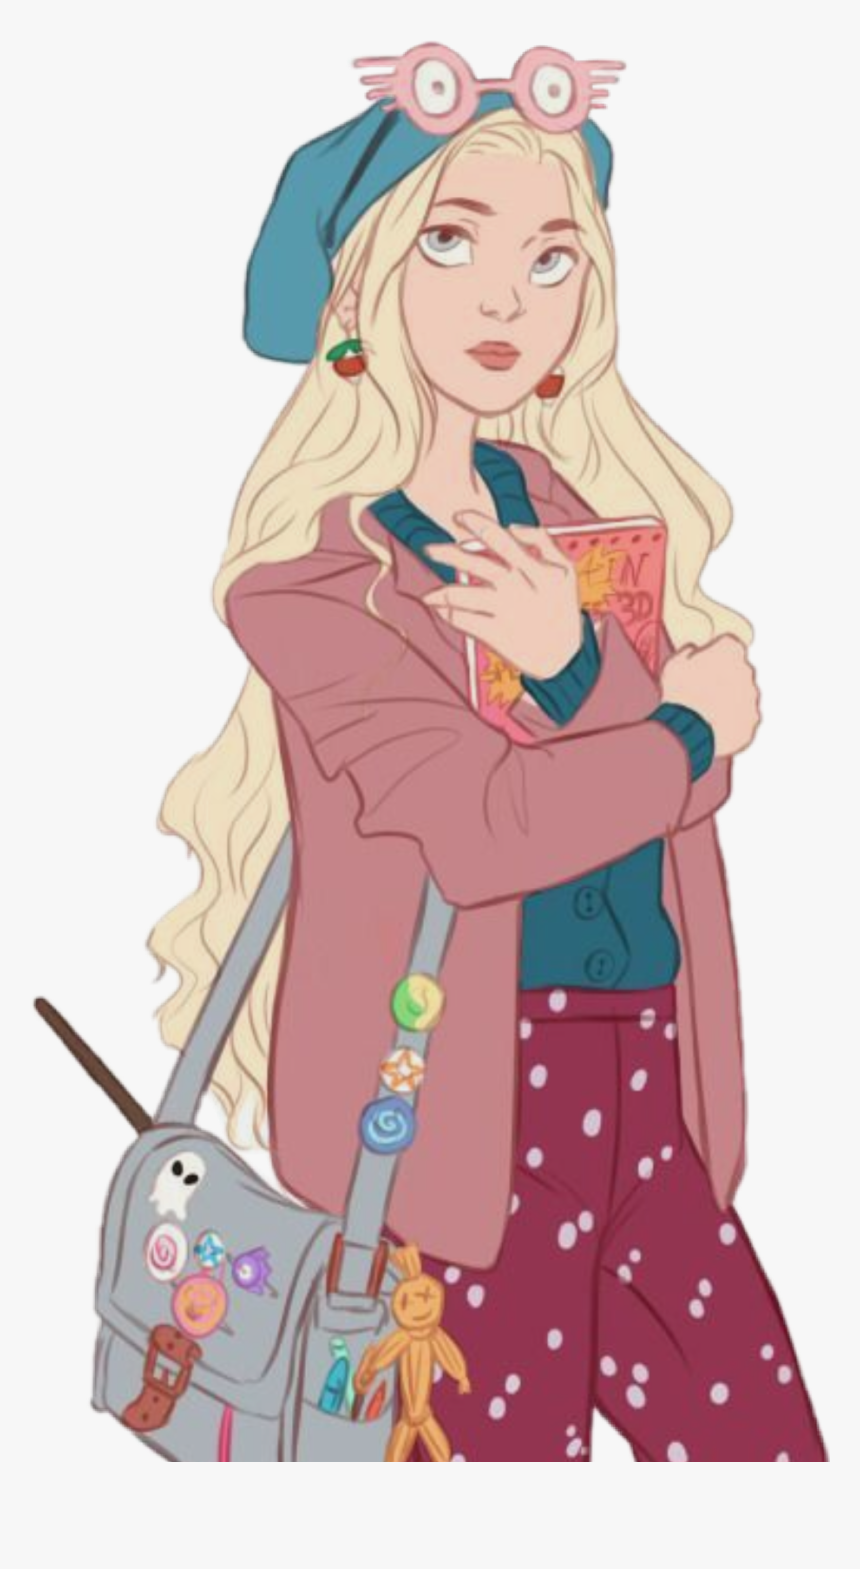 Luna Lovegood Lunalovegood Ravenclaw Hogwarts Luna Lovegood Fan Art Hd Png Download Transparent Png Image Pngitem